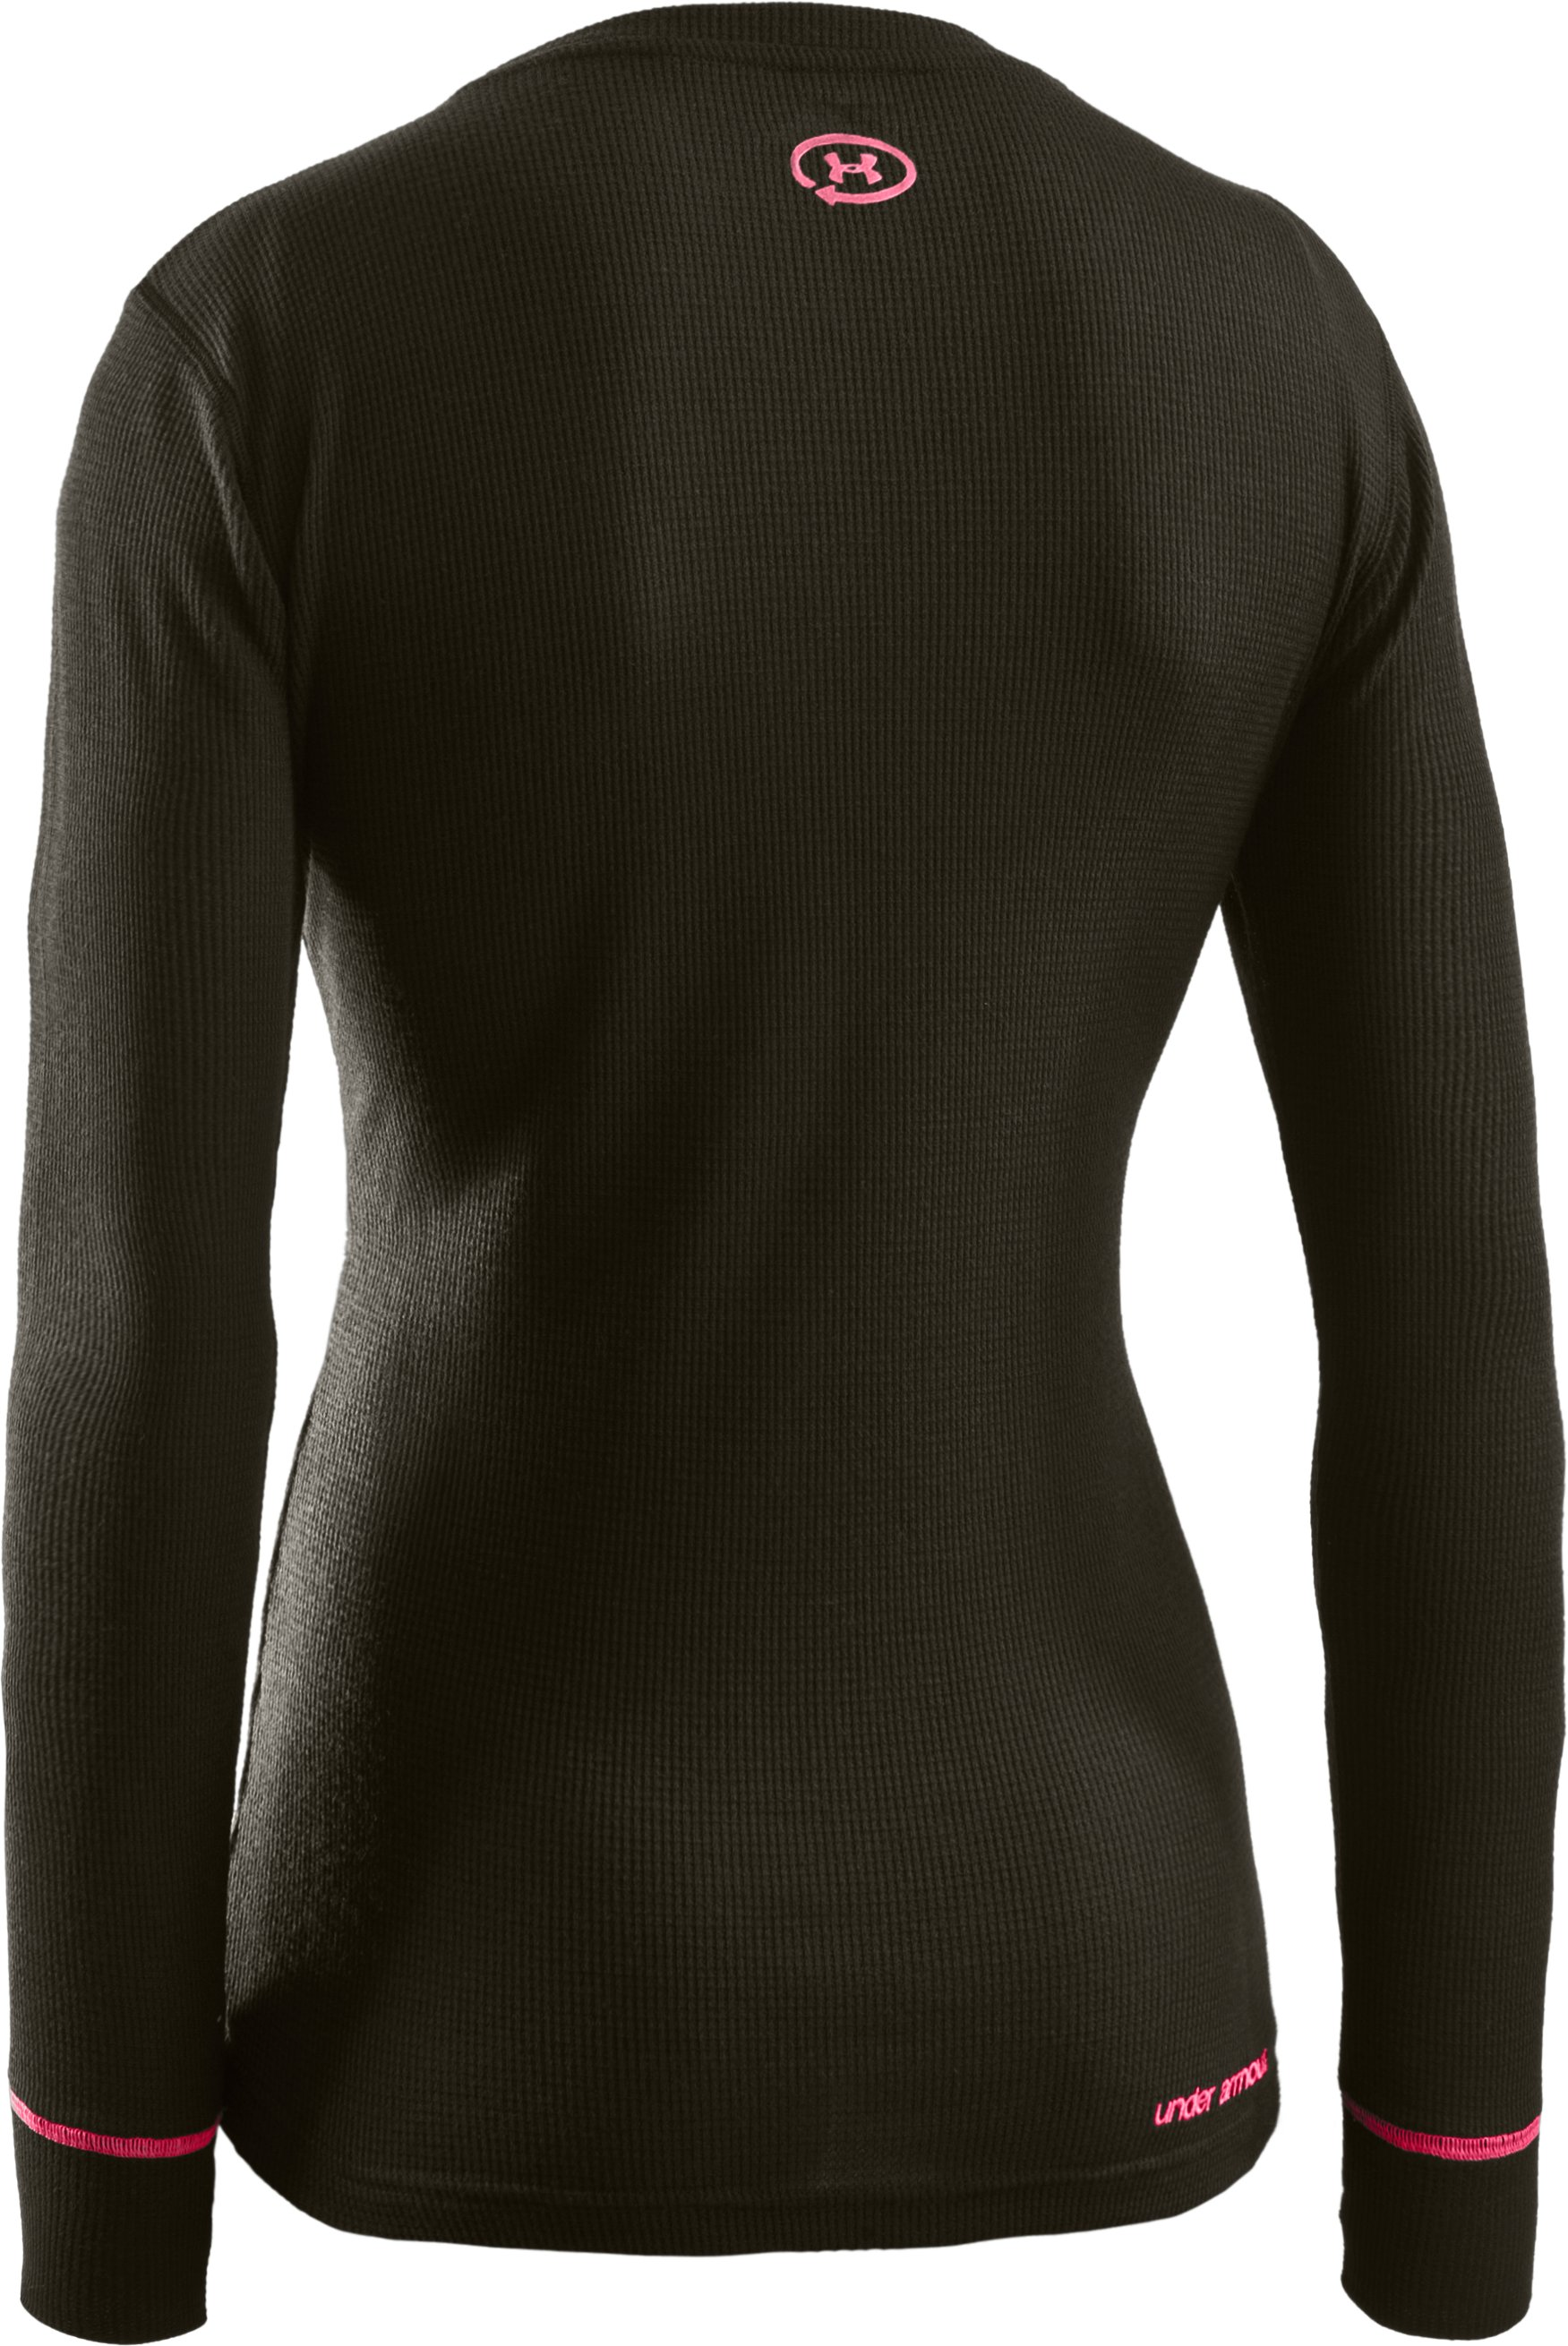 Women's Waffle Tackle Twill Long Sleeve Crew, Rifle Green